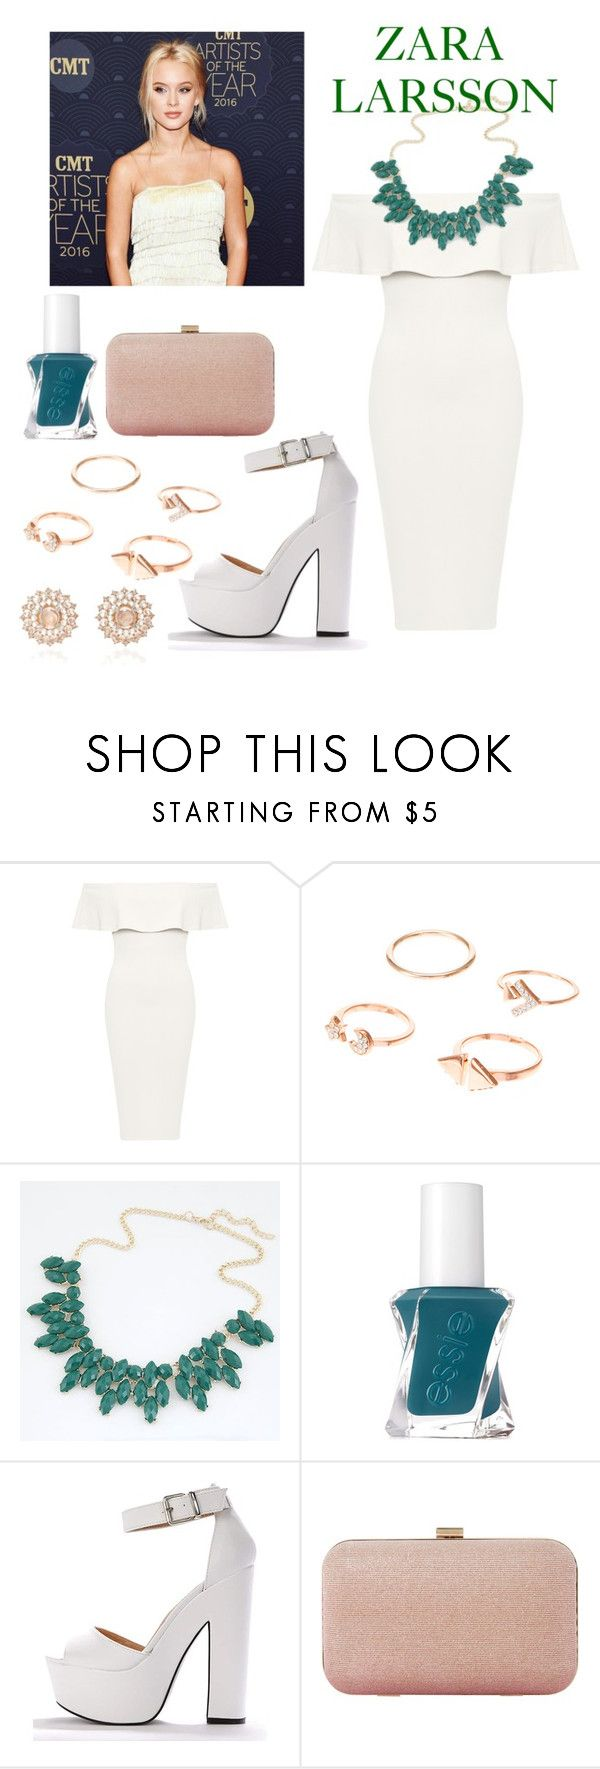 """""""Zara Larsson"""" by katykatcara ❤ liked on Polyvore featuring WearAll, Essie, Dune, Nam Cho, celebrity, Fan, zara and singer"""